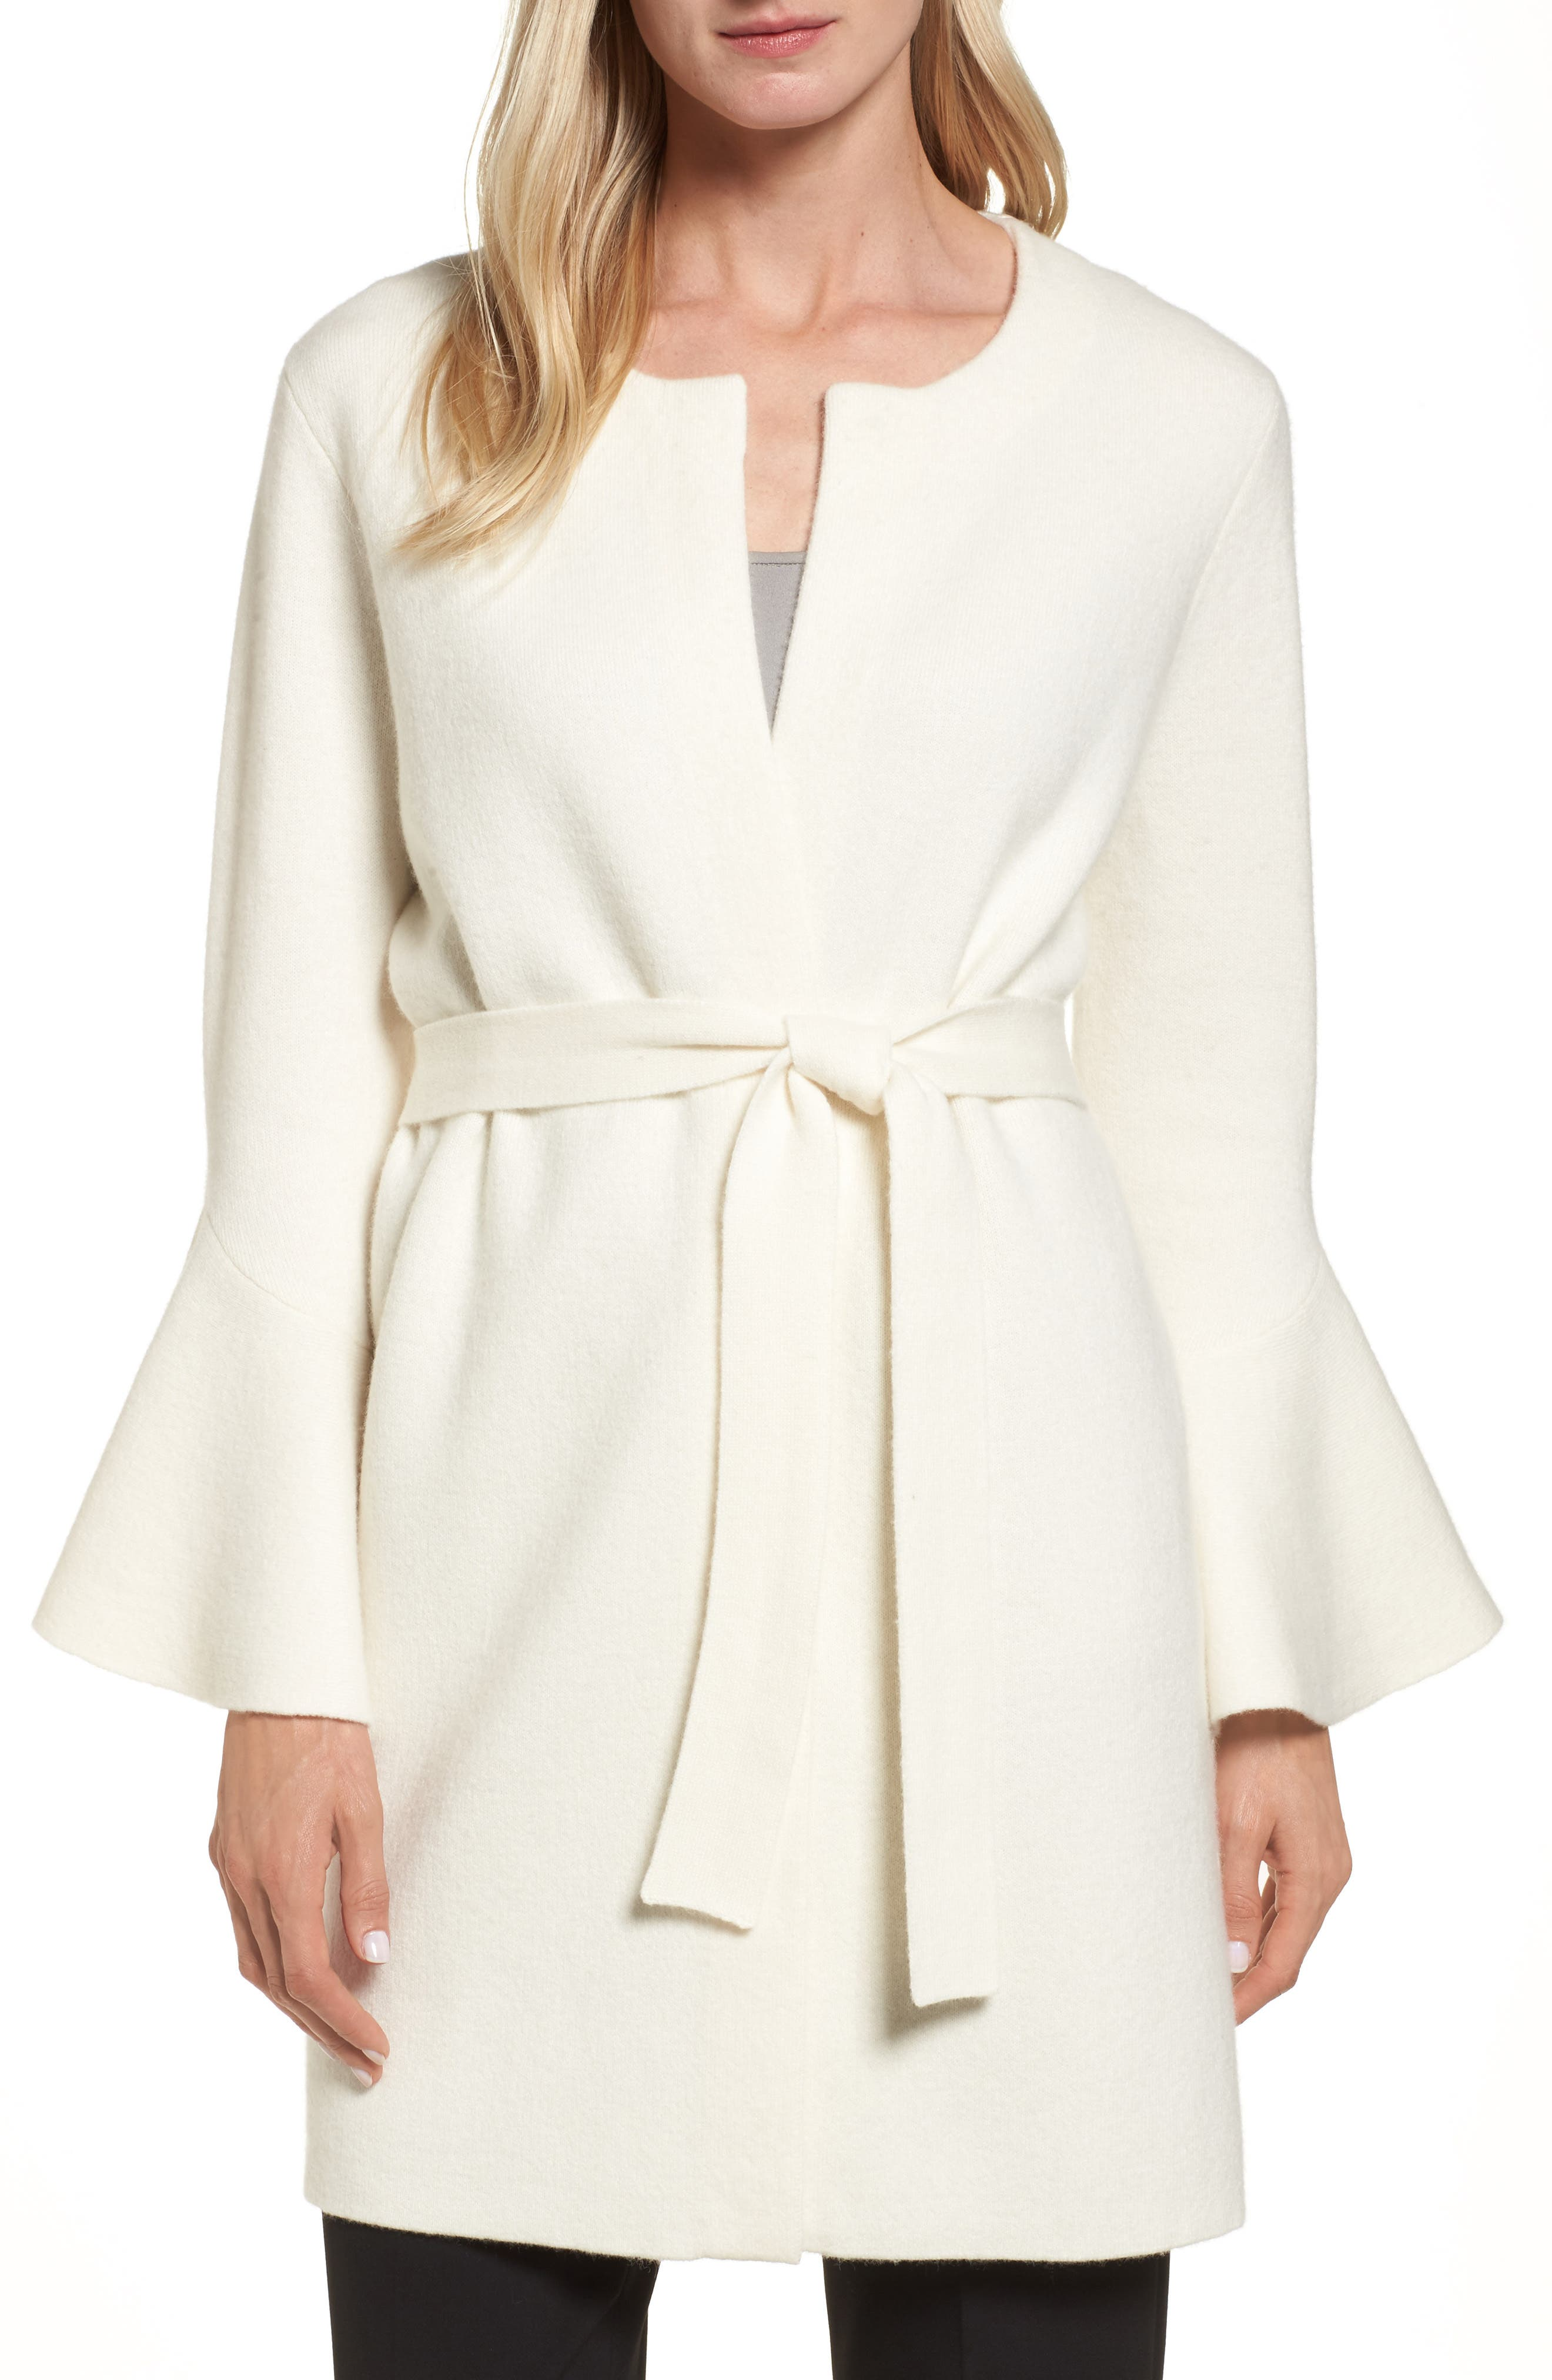 Emerson Rose Belted Cashmere Cardigan